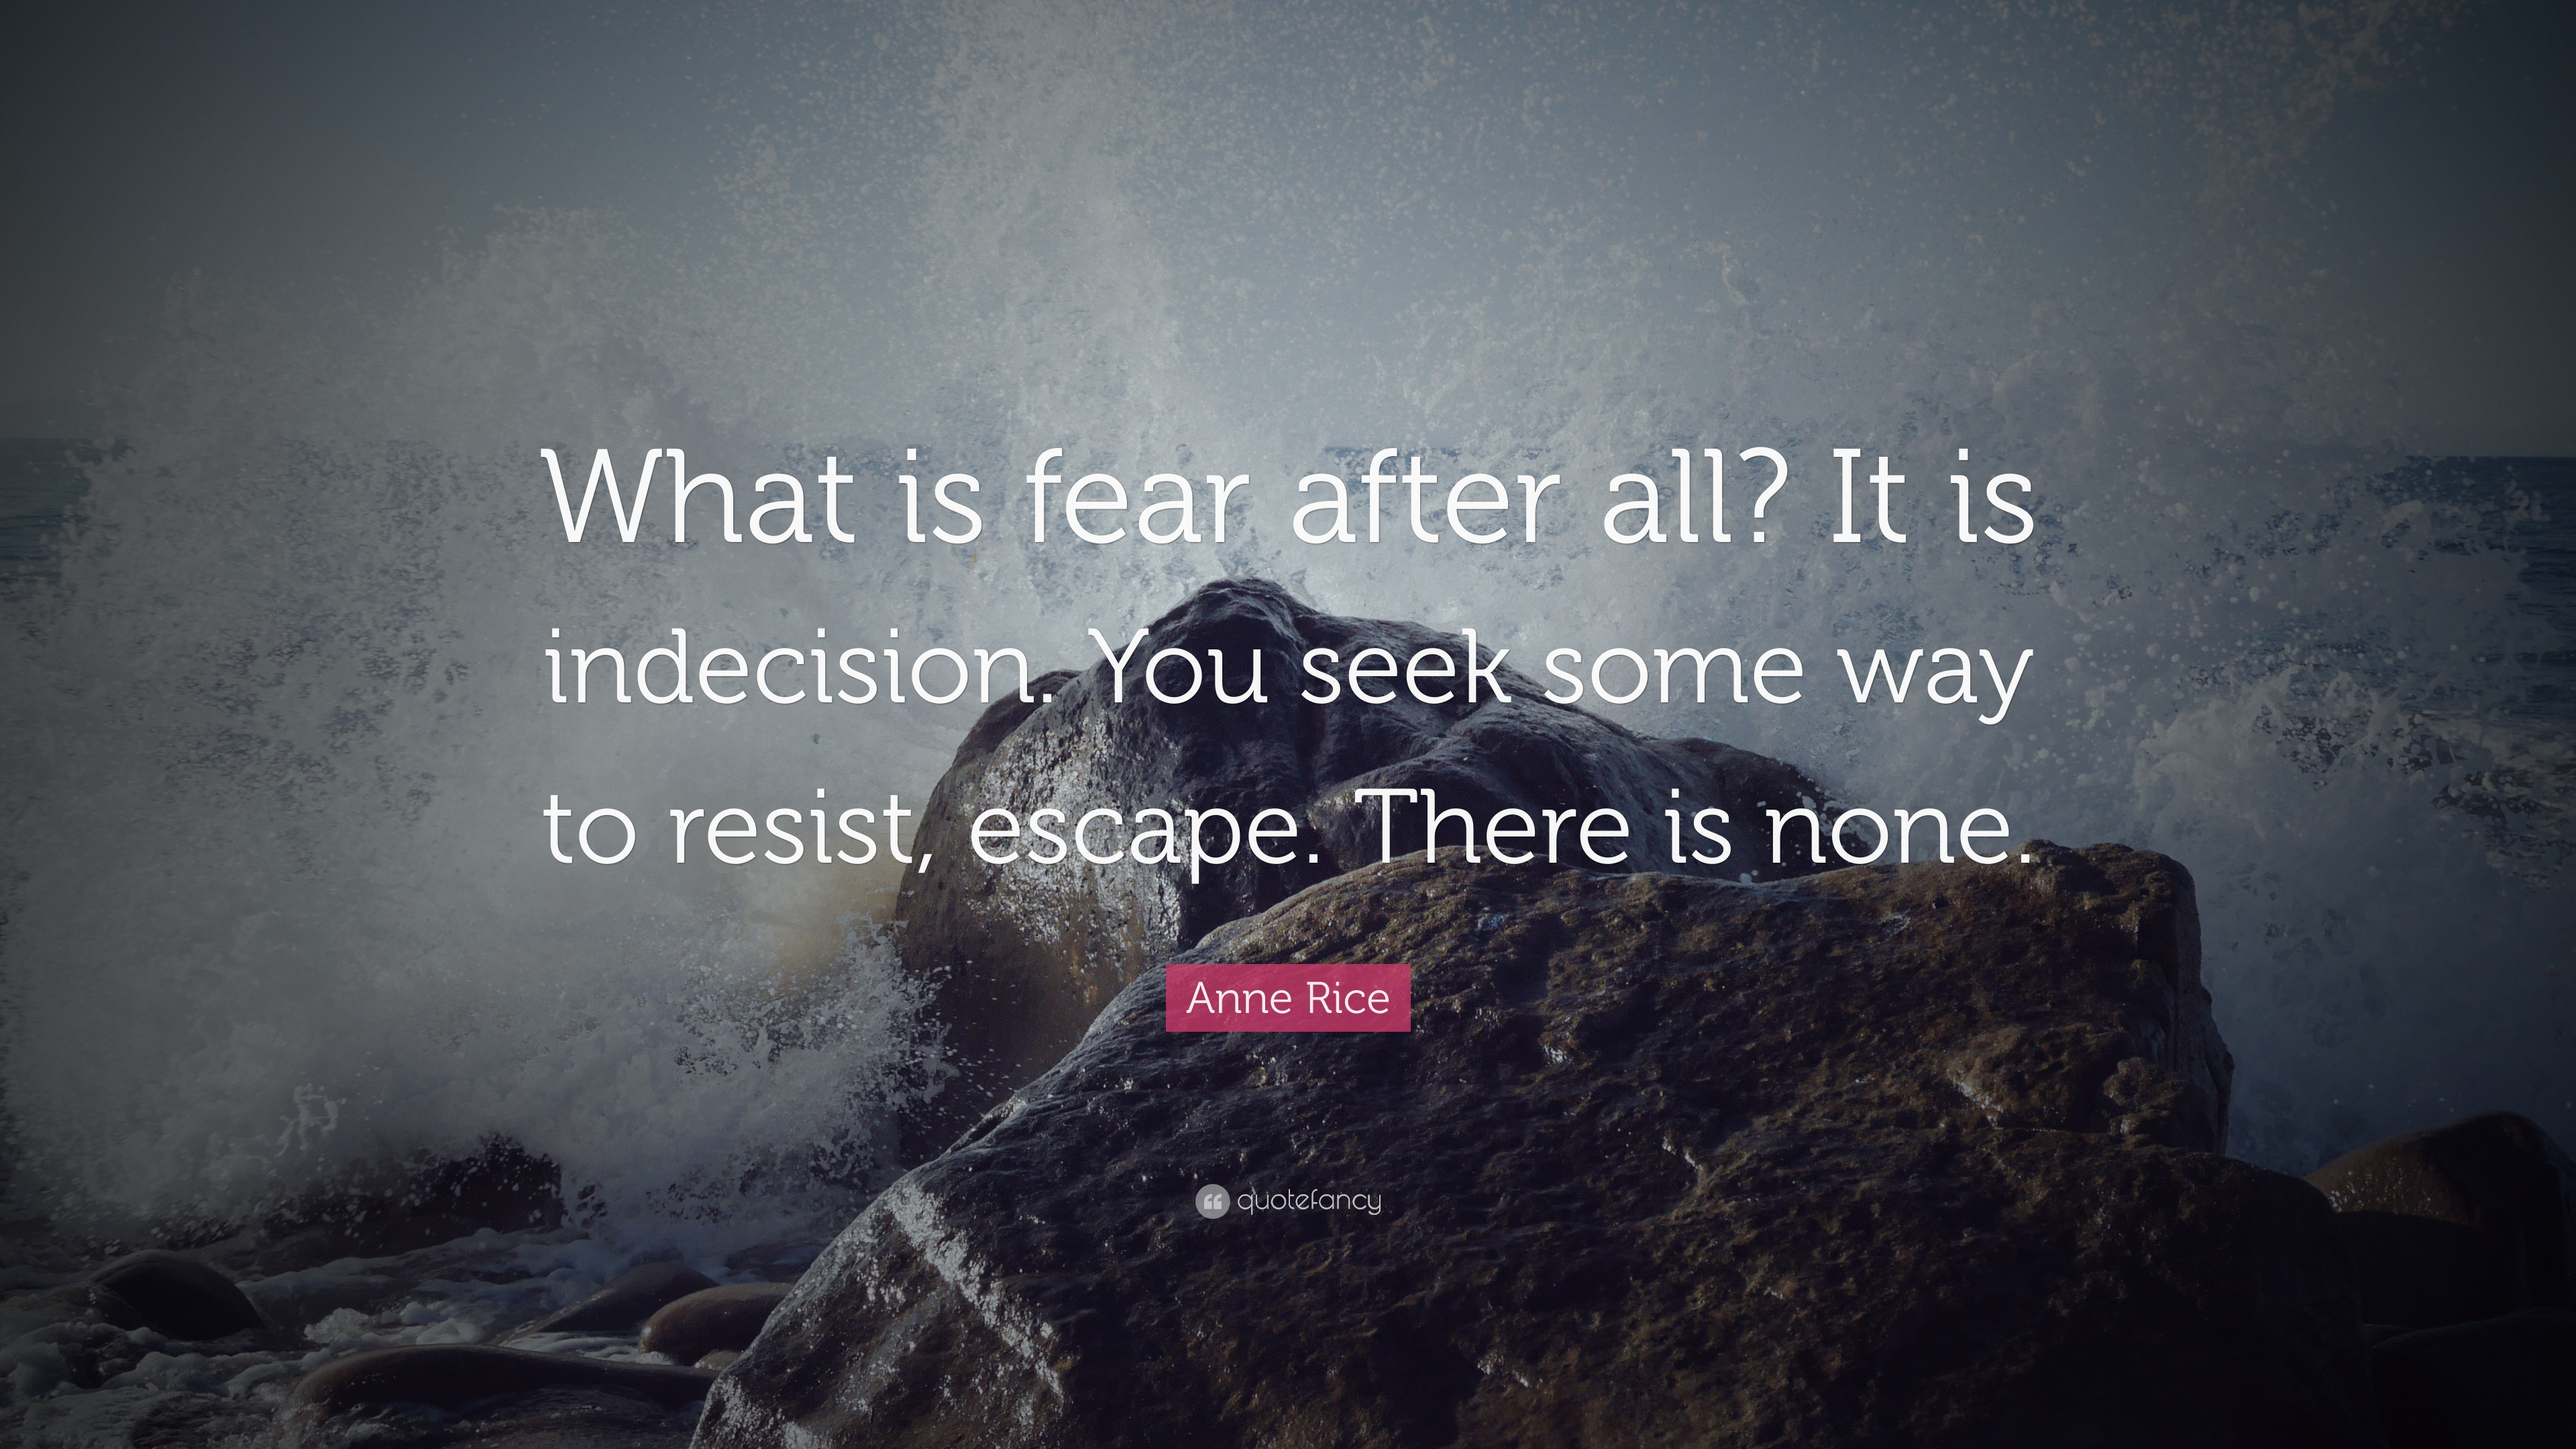 anne rice quote what is fear after all it is indecision you seek